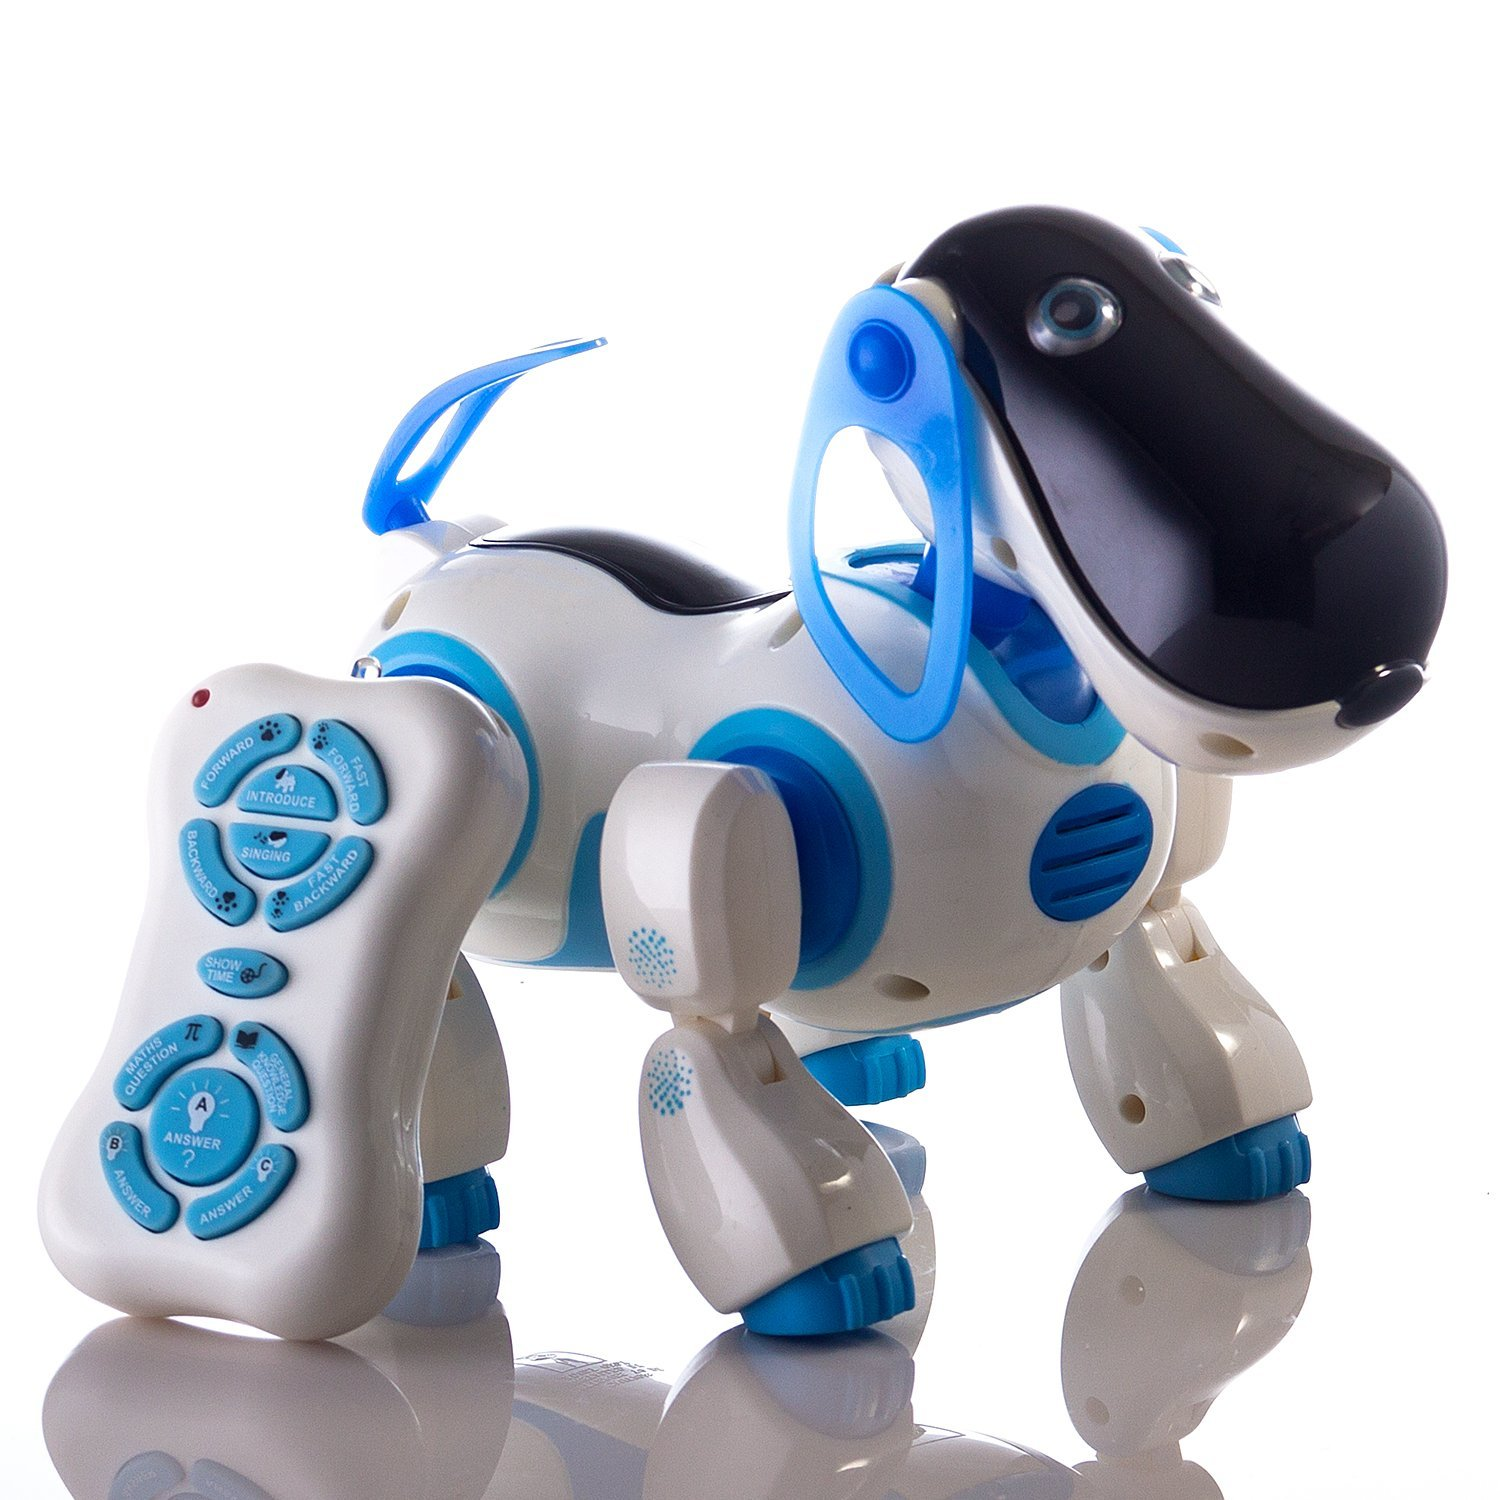 Durherm Smart Storytelling Robot Dog Sing Dance Walking Talking Dialogue Cute Pet Toy with Infrared Remote Control